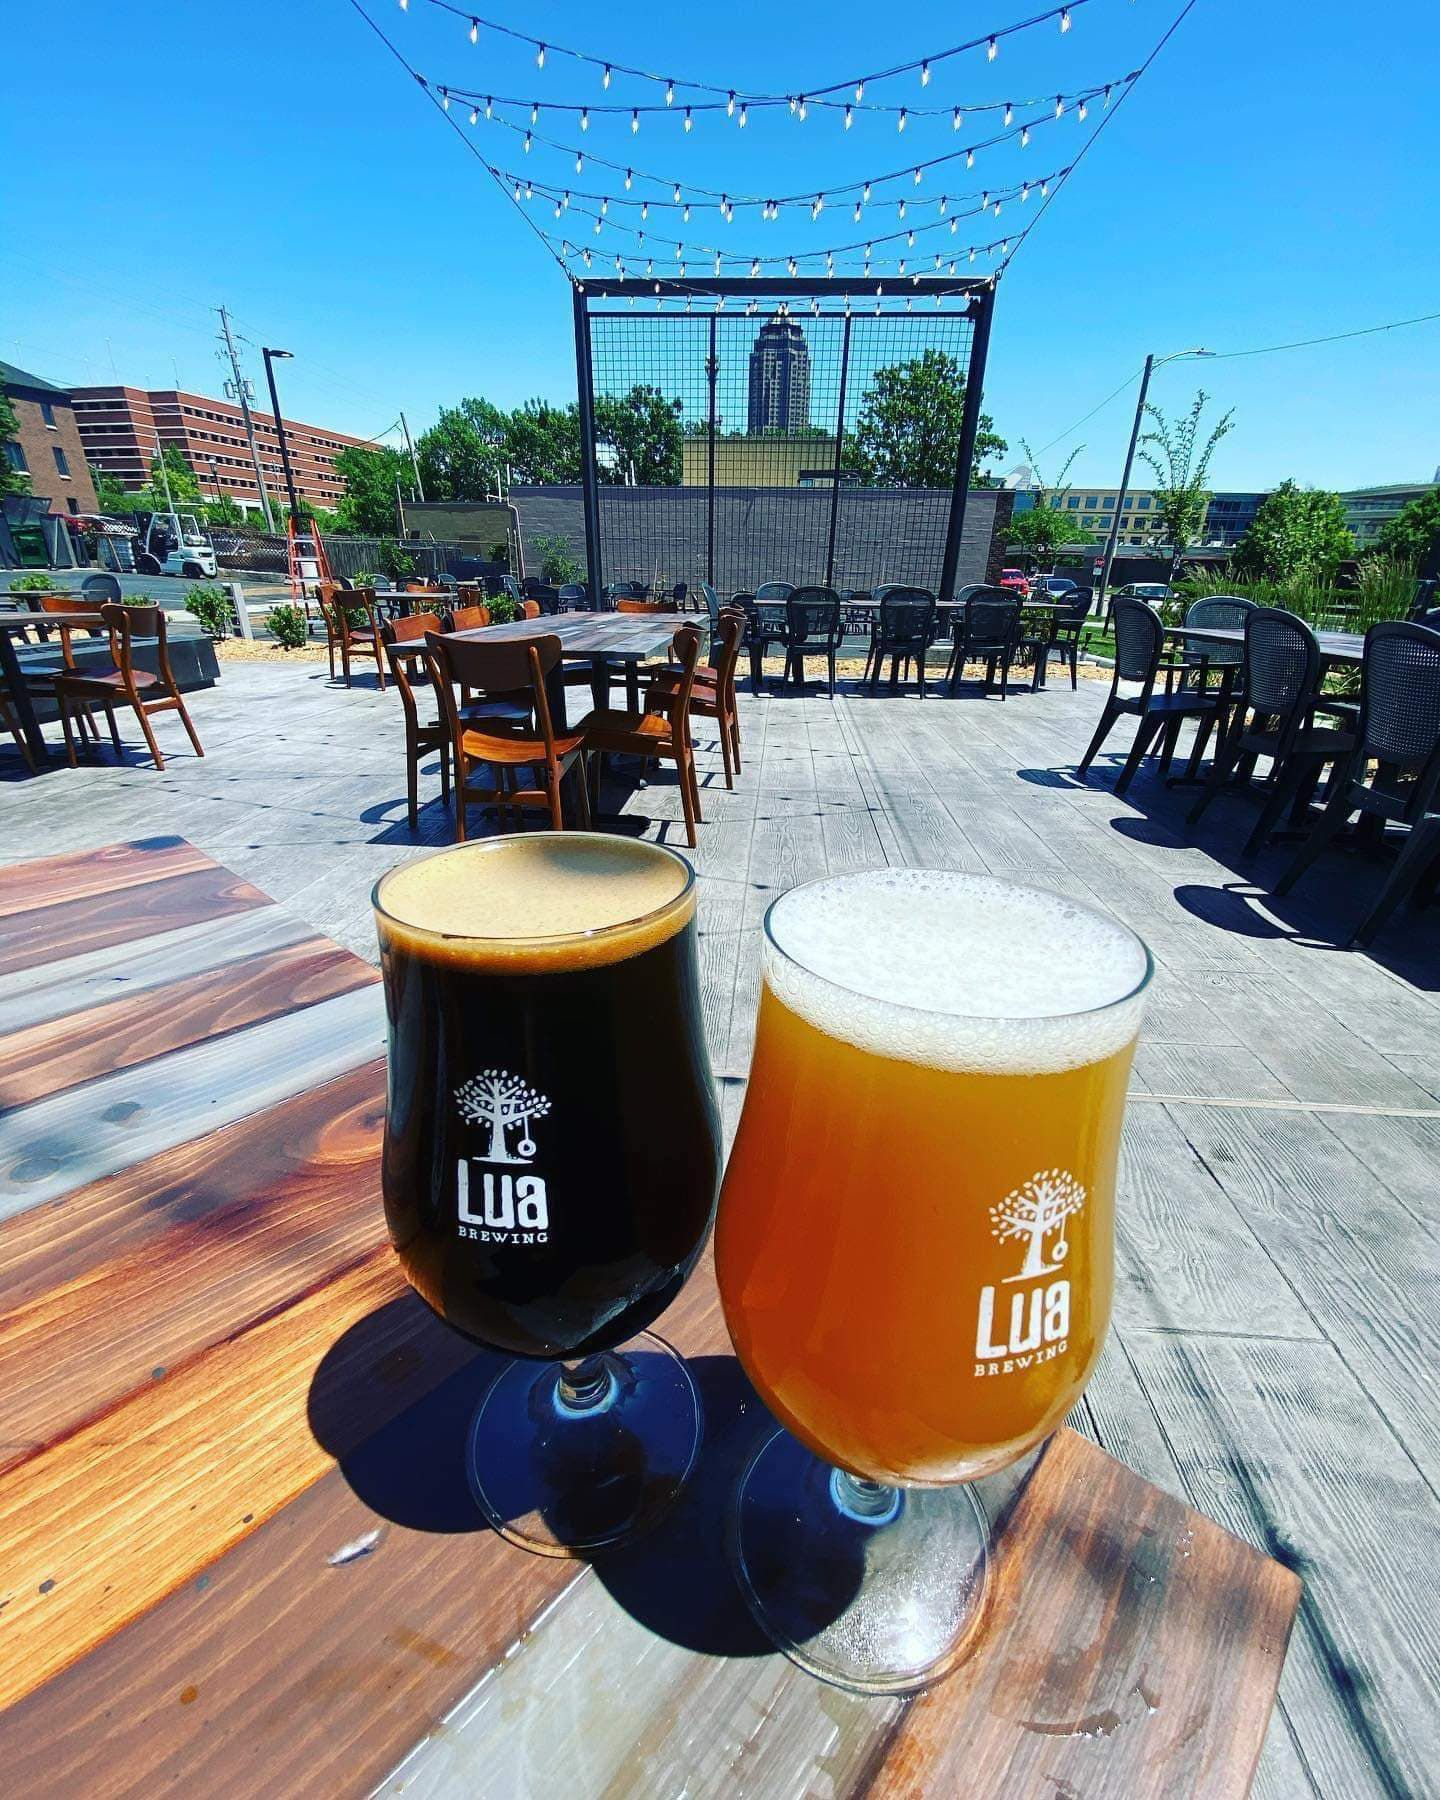 A photo of Lua Brewing